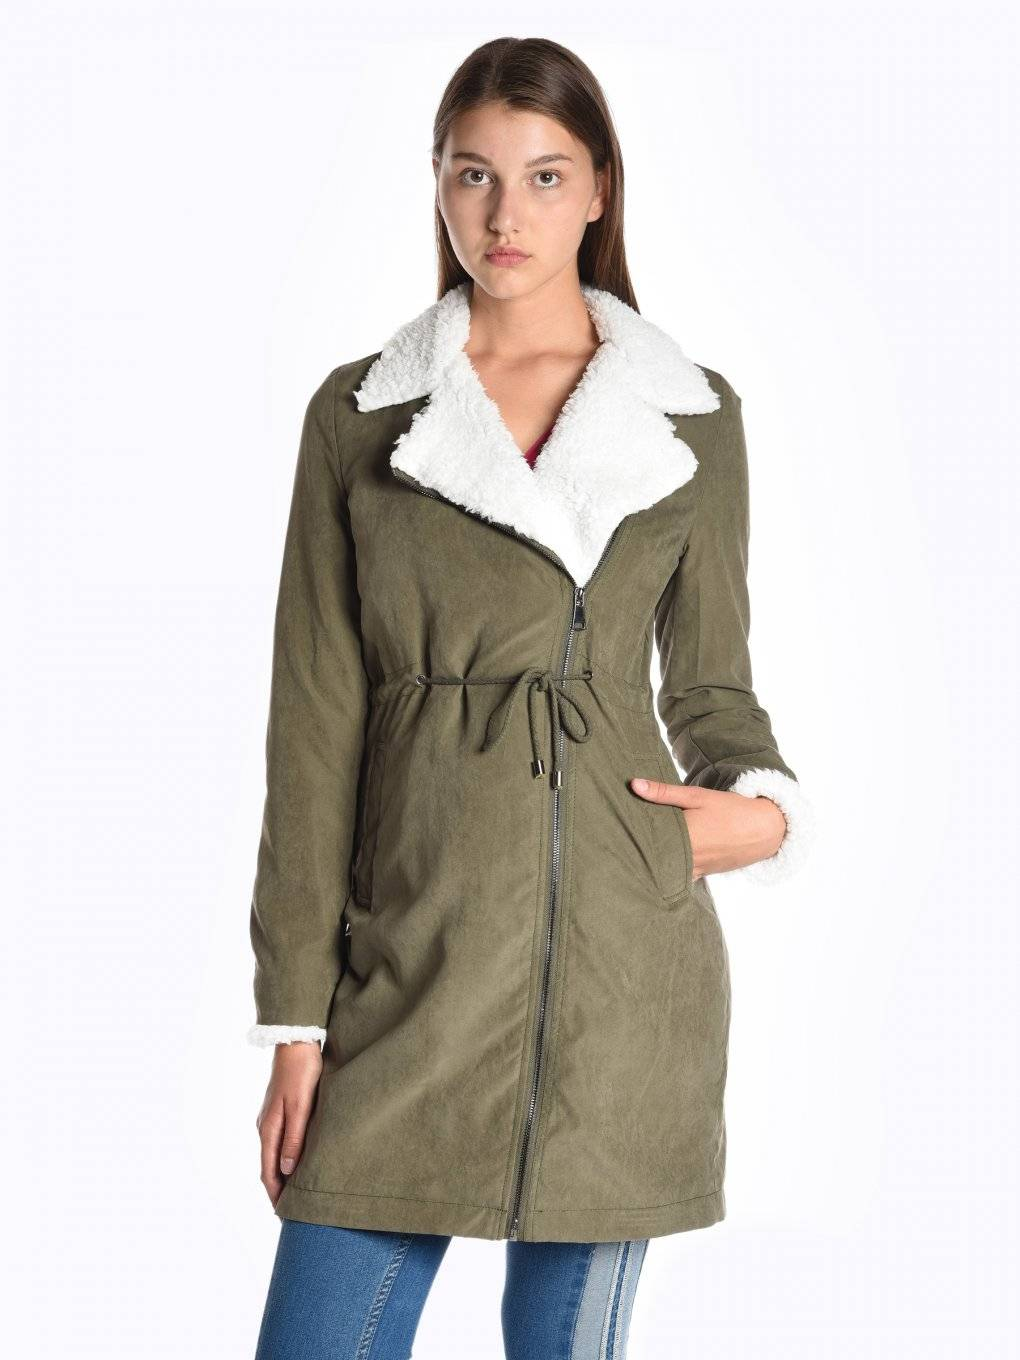 Longline jacket with asymmetric zipper and pile details pile details